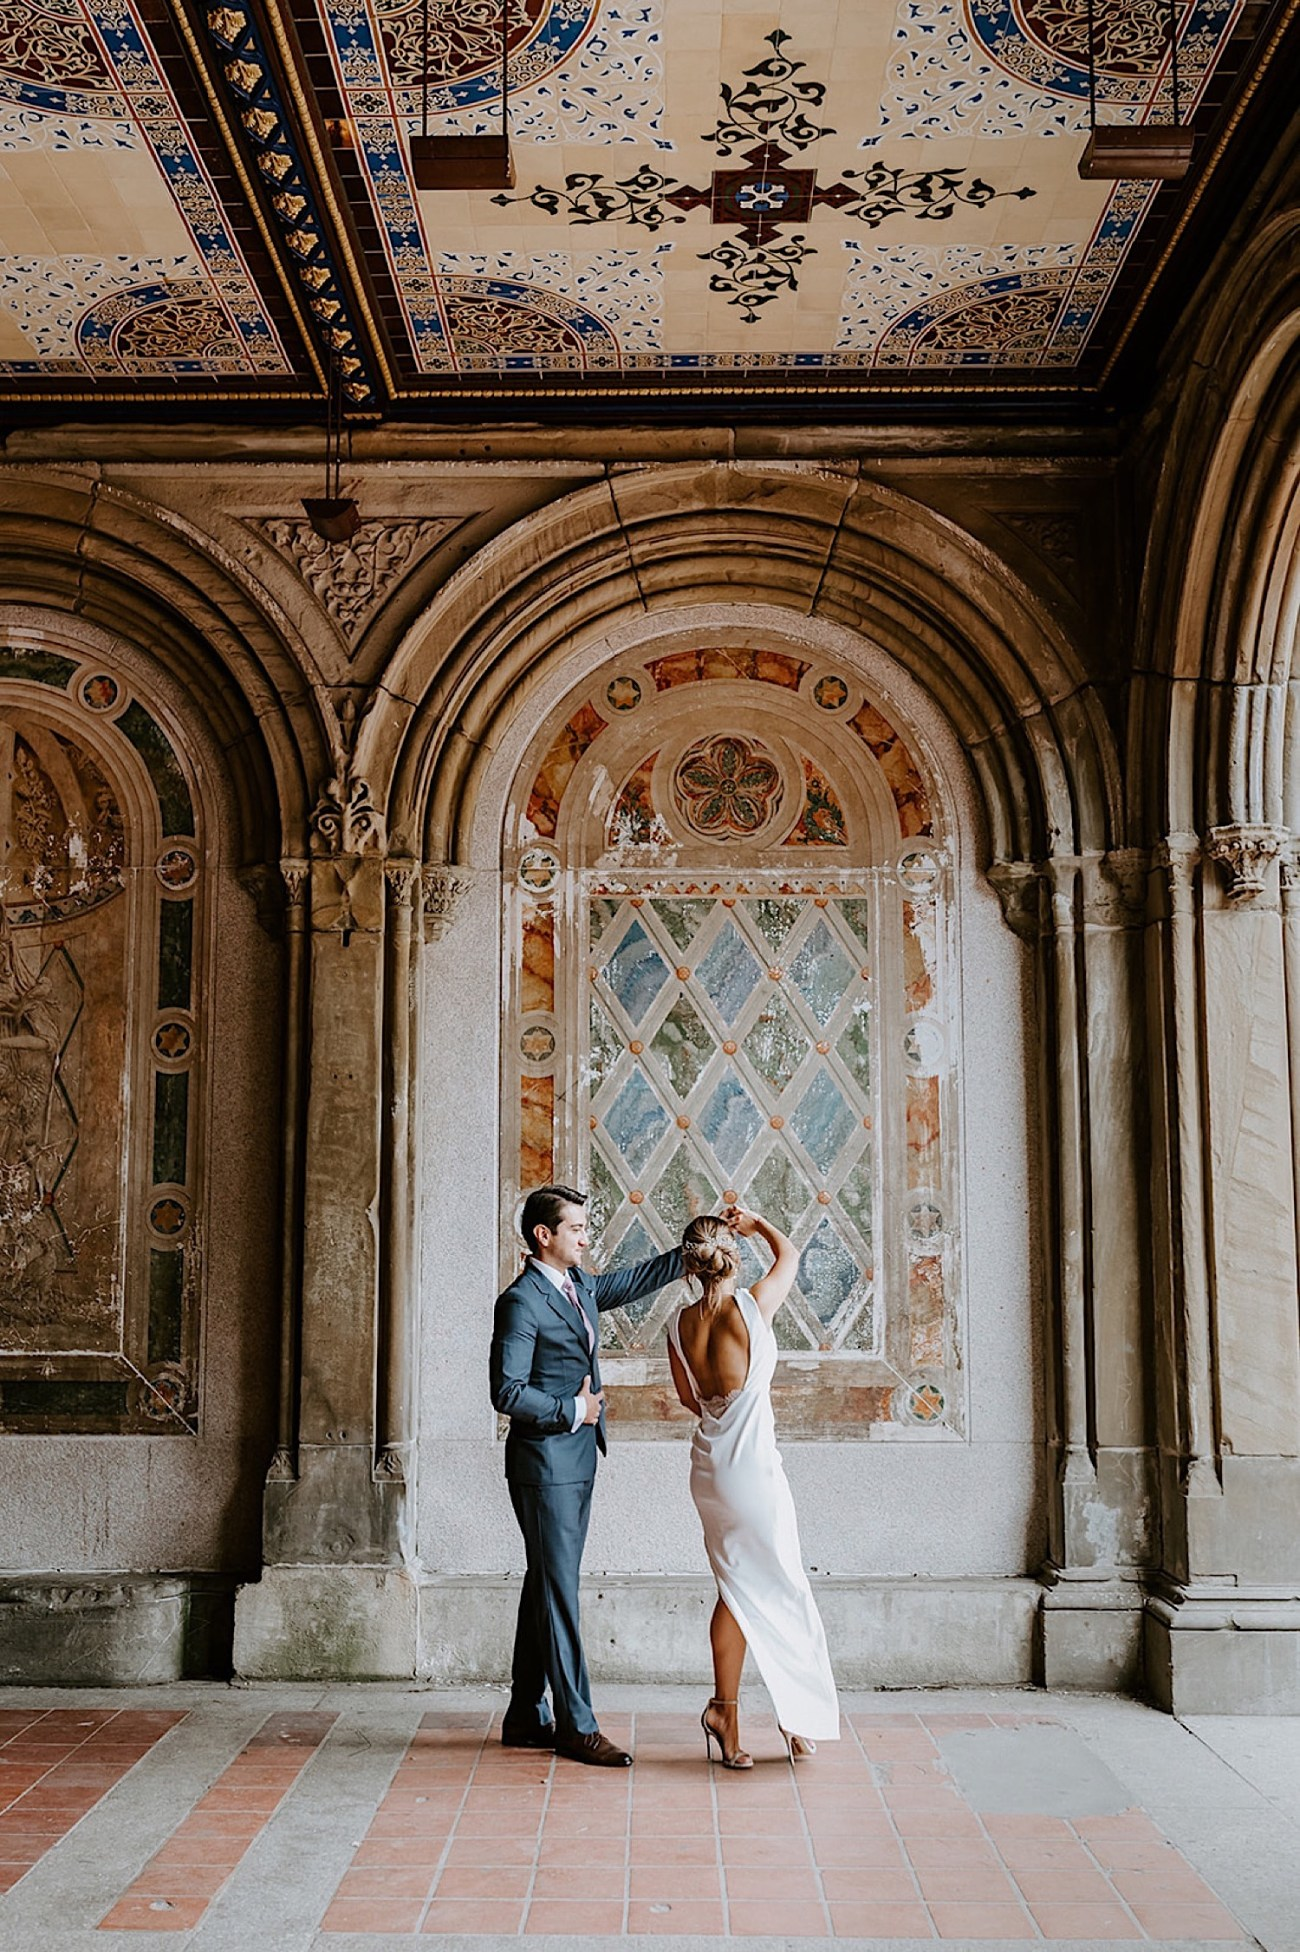 088 Central Park Elopement Bethesda Fountain Wedding Photos New York Wedding Photographer Central Park Wedding Photos